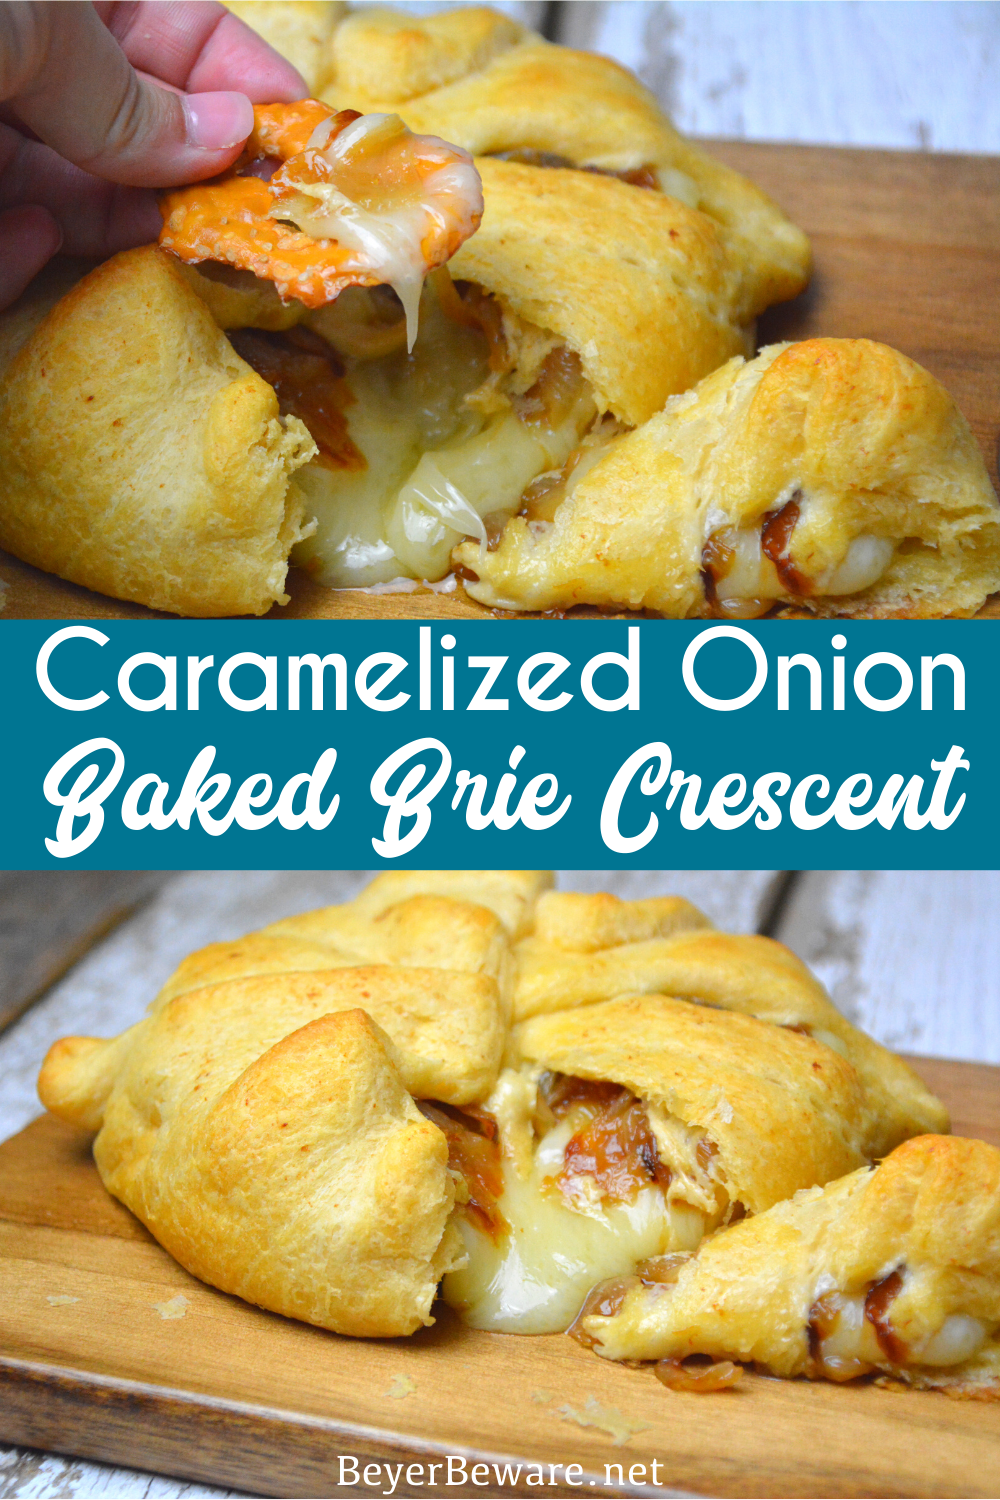 Caramelized onion baked brie crescent round is a simple brie en croute recipe made with caramelized onions and brie for a baked brie recipe.